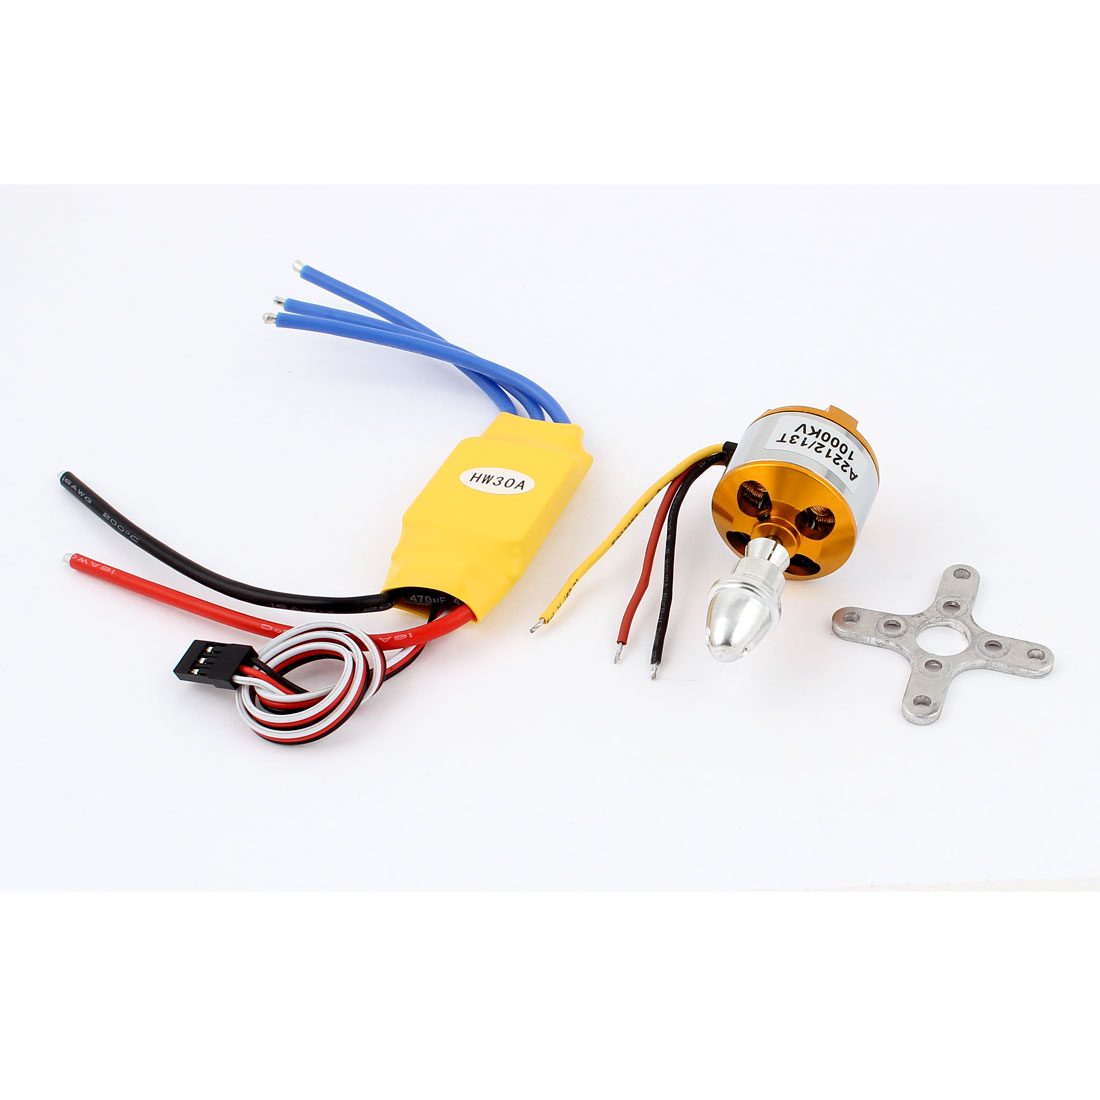 A2212 1000KV Brushless Motor + 30A ESC for RC Model Airplane Boat